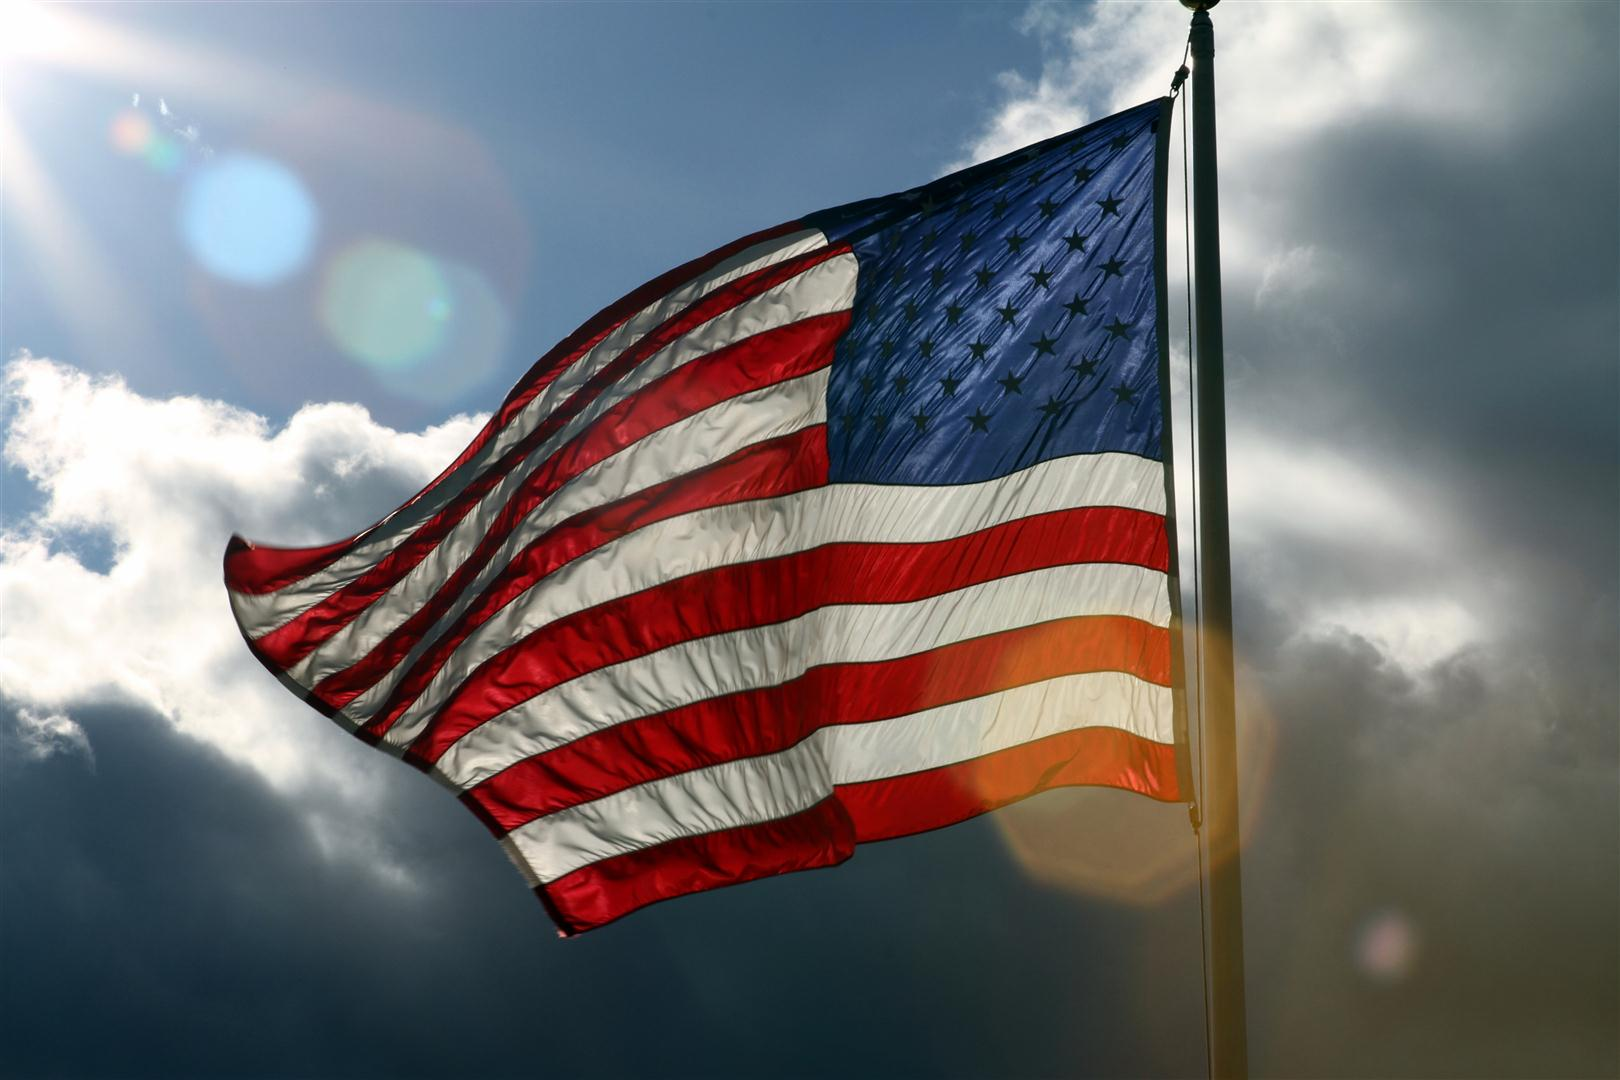 American flag photography full hd pictures - American flag hd ...